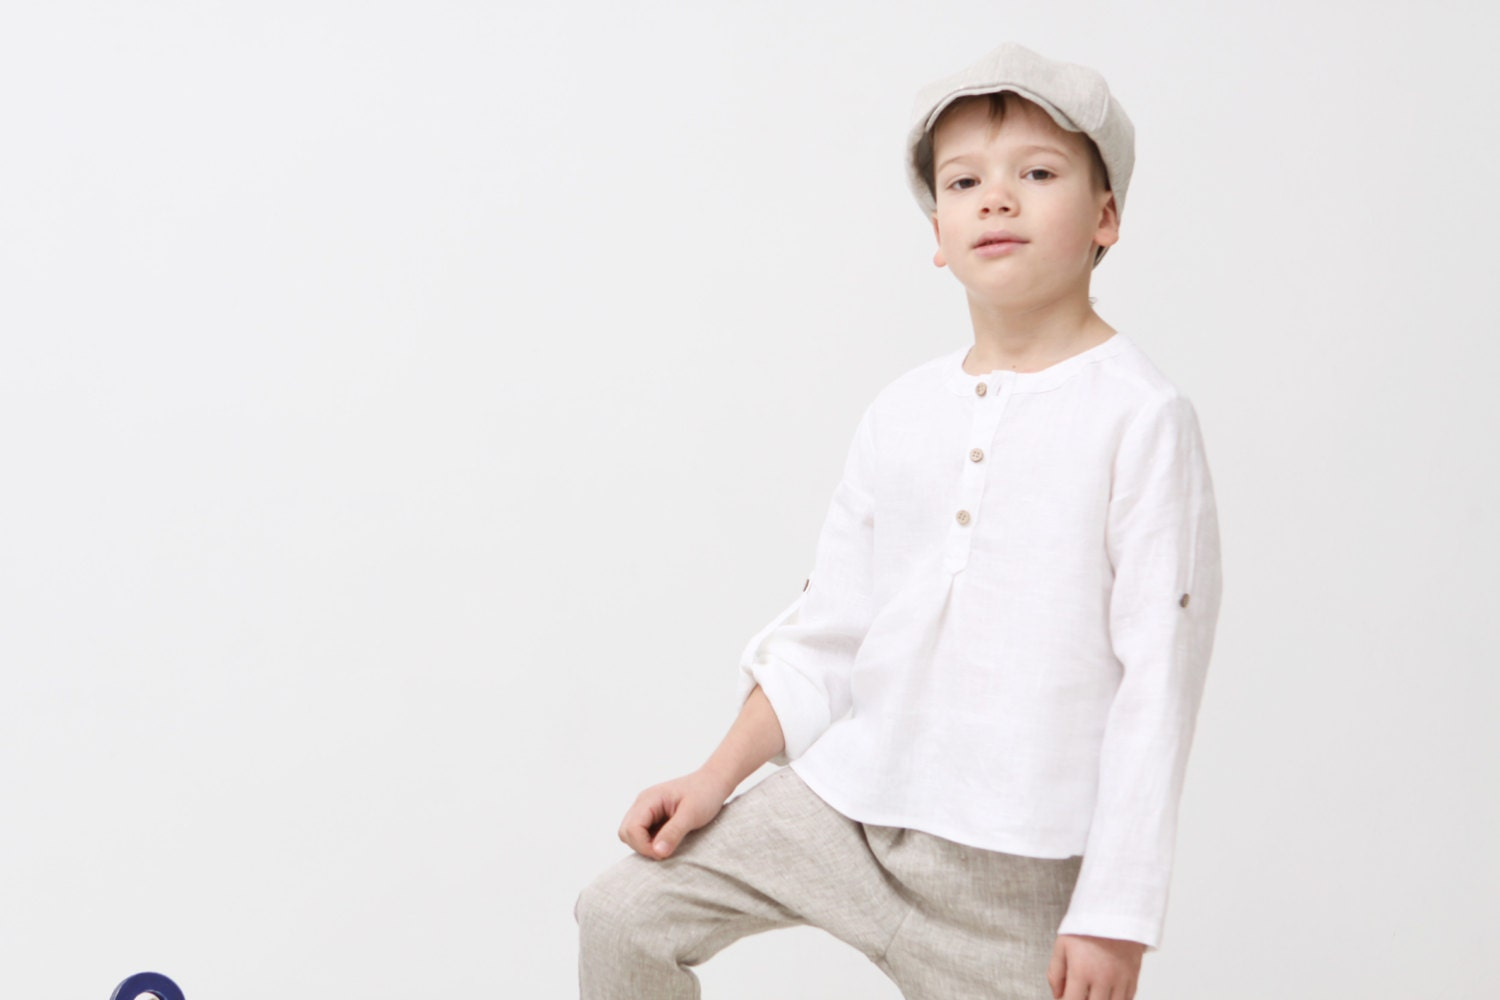 Shop jwl-network.ga for Boys' Shirts and see our entire selection of Dress Shirts, Boys' Collar Shirts, Linen Shirts and Oxford Shirts. Free Shipping on all orders! Boys' Thomas Mason® for crewcuts Ludlow shirt in white $ QUICK SHOP. Boys' Thomas Mason® for crewcuts Ludlow shirt. $